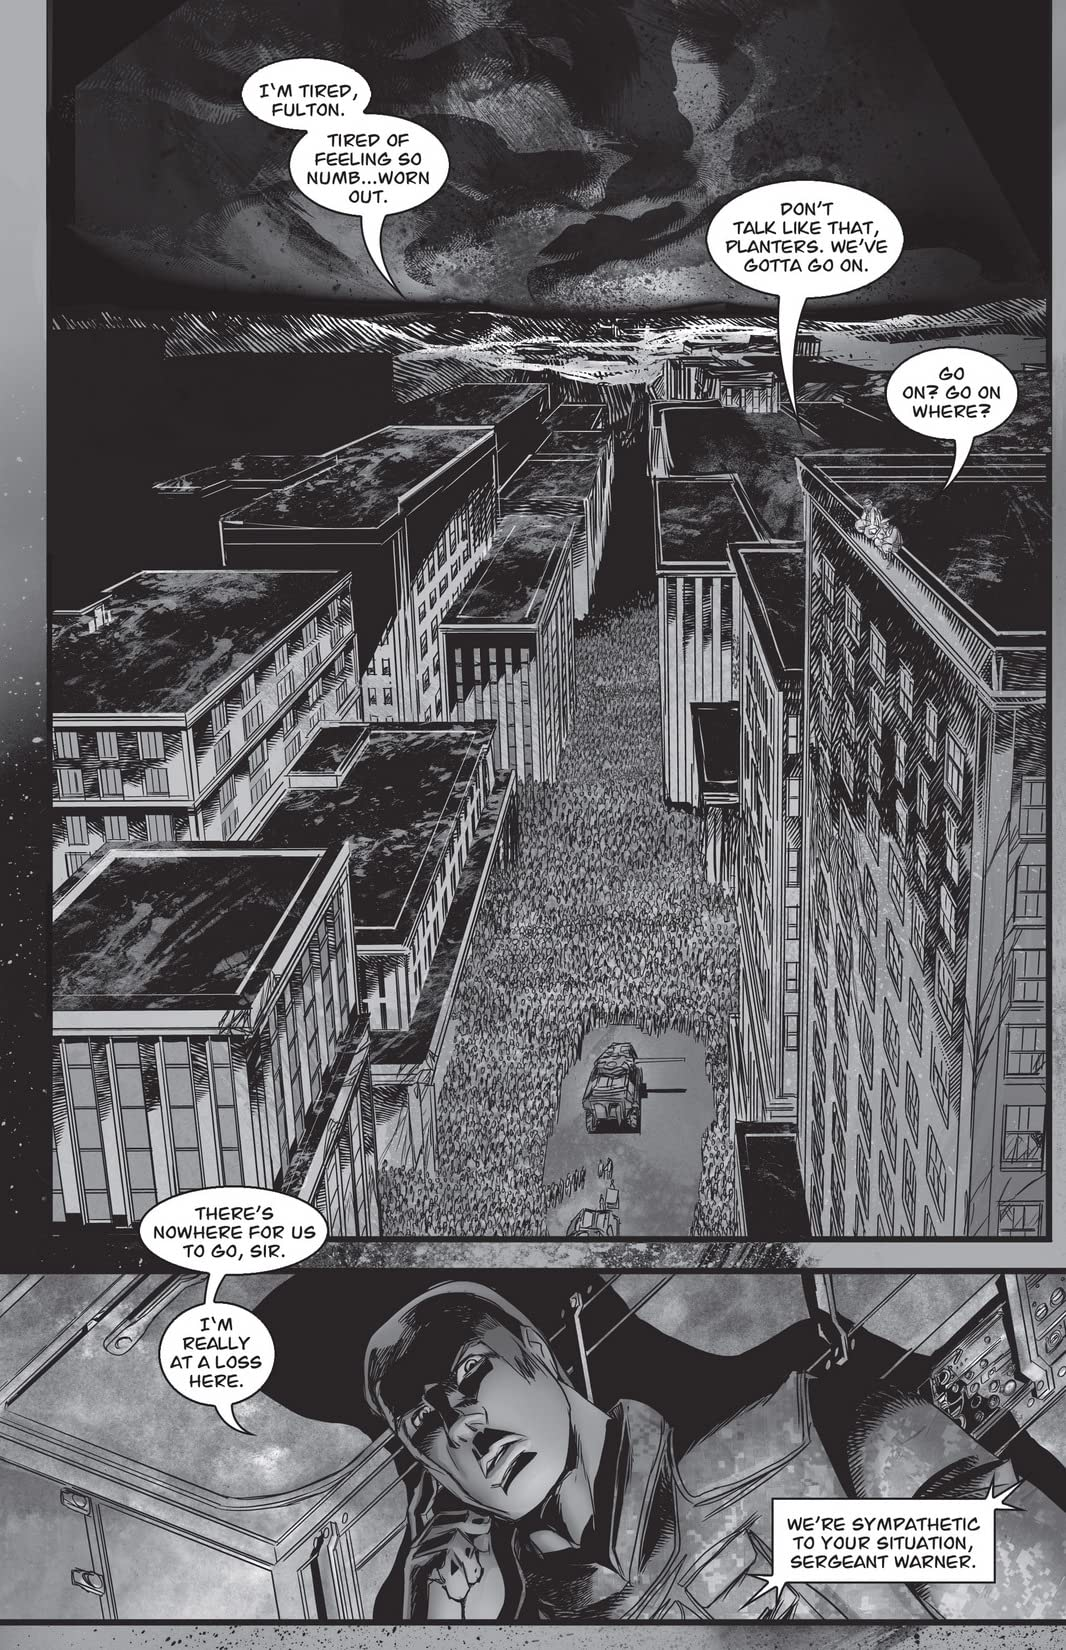 The Last Zombie: Inferno #4 (of 5)